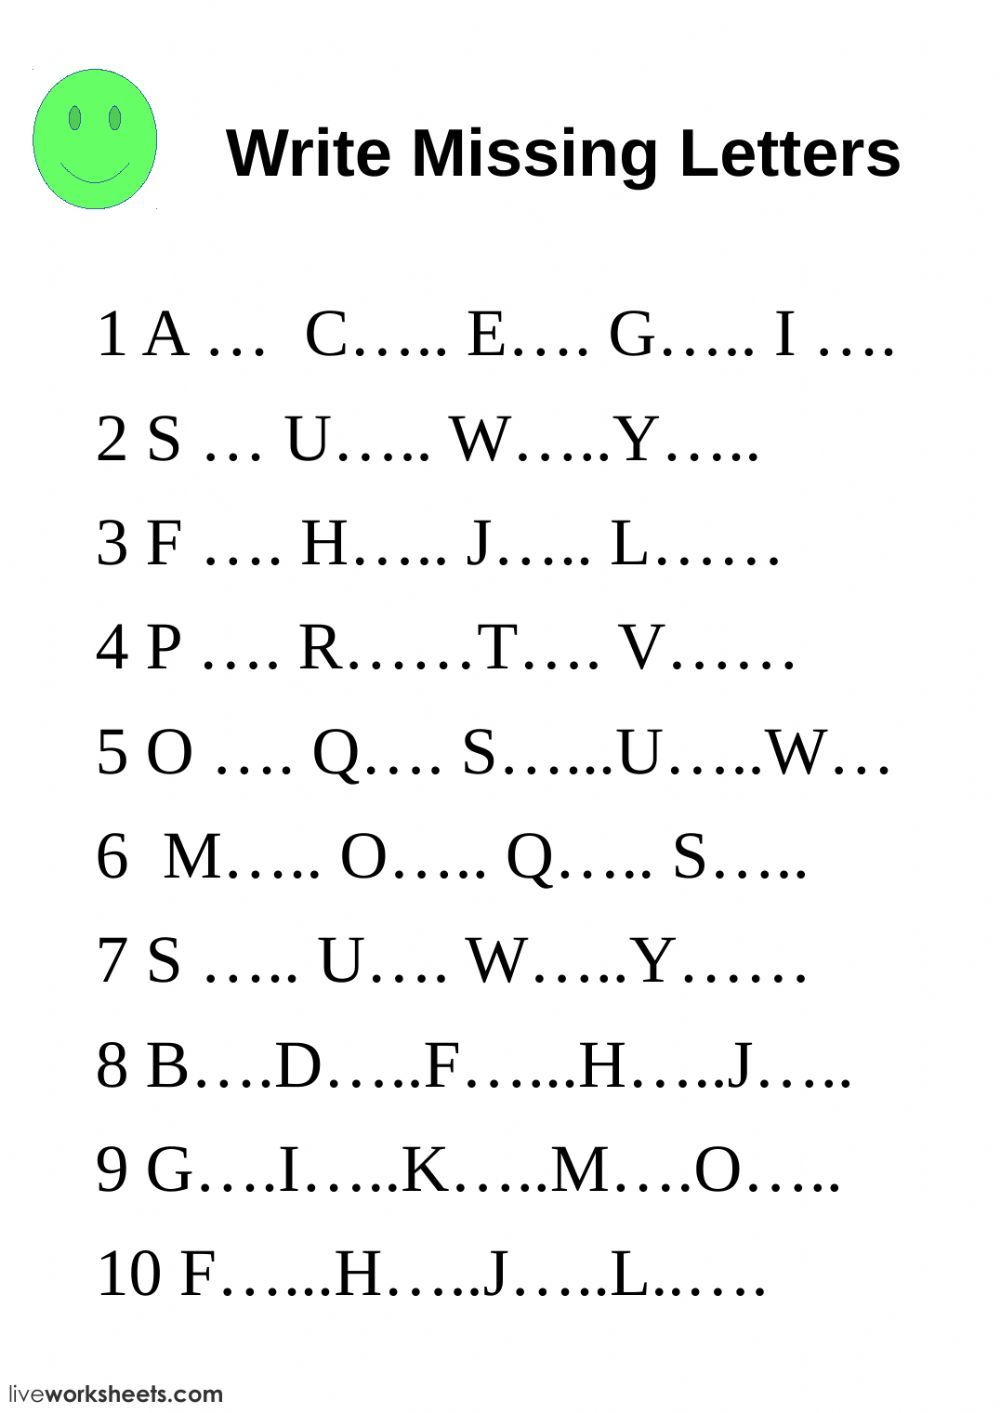 The Alphabet Interactive And Downloadable Worksheet You Can Do The Exercis Letter Worksheets Kindergarten Missing Letter Worksheets Alphabet Letter Worksheets